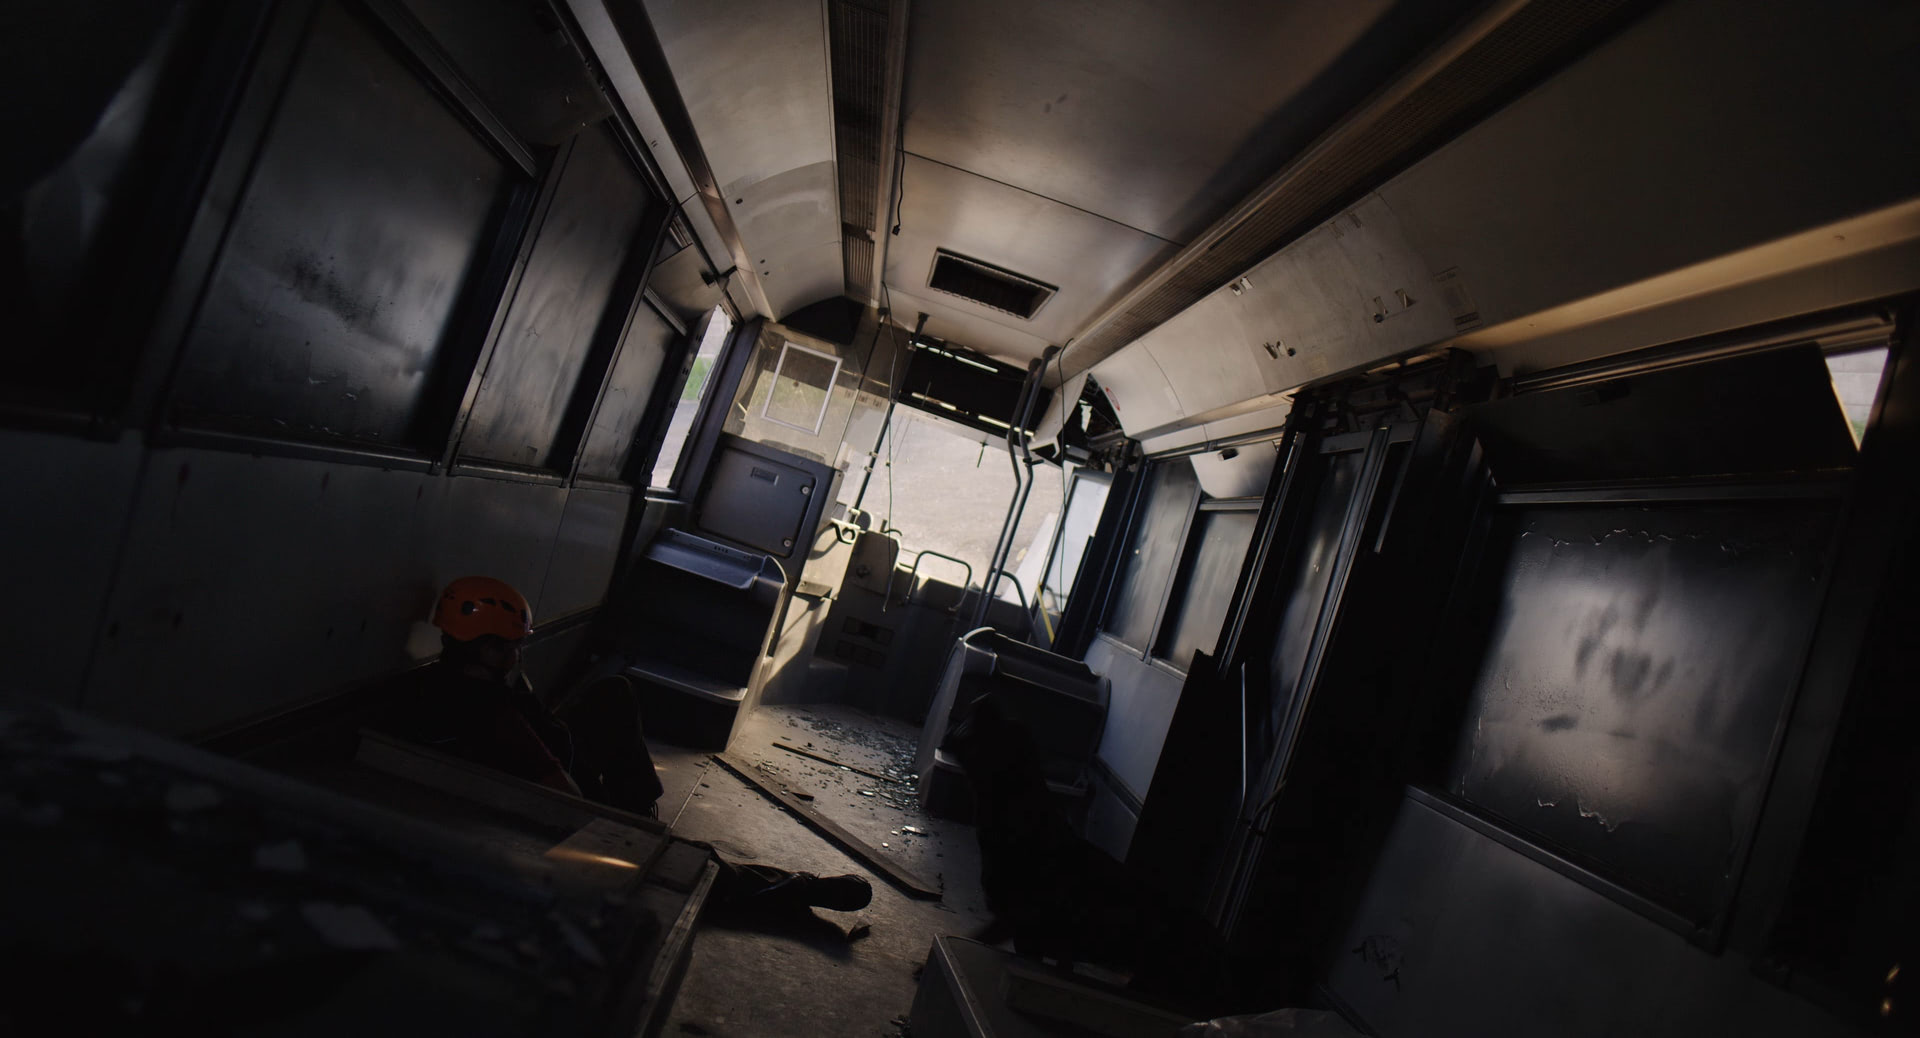 A person hiding inside the interior of an abandoned and broken down bus.